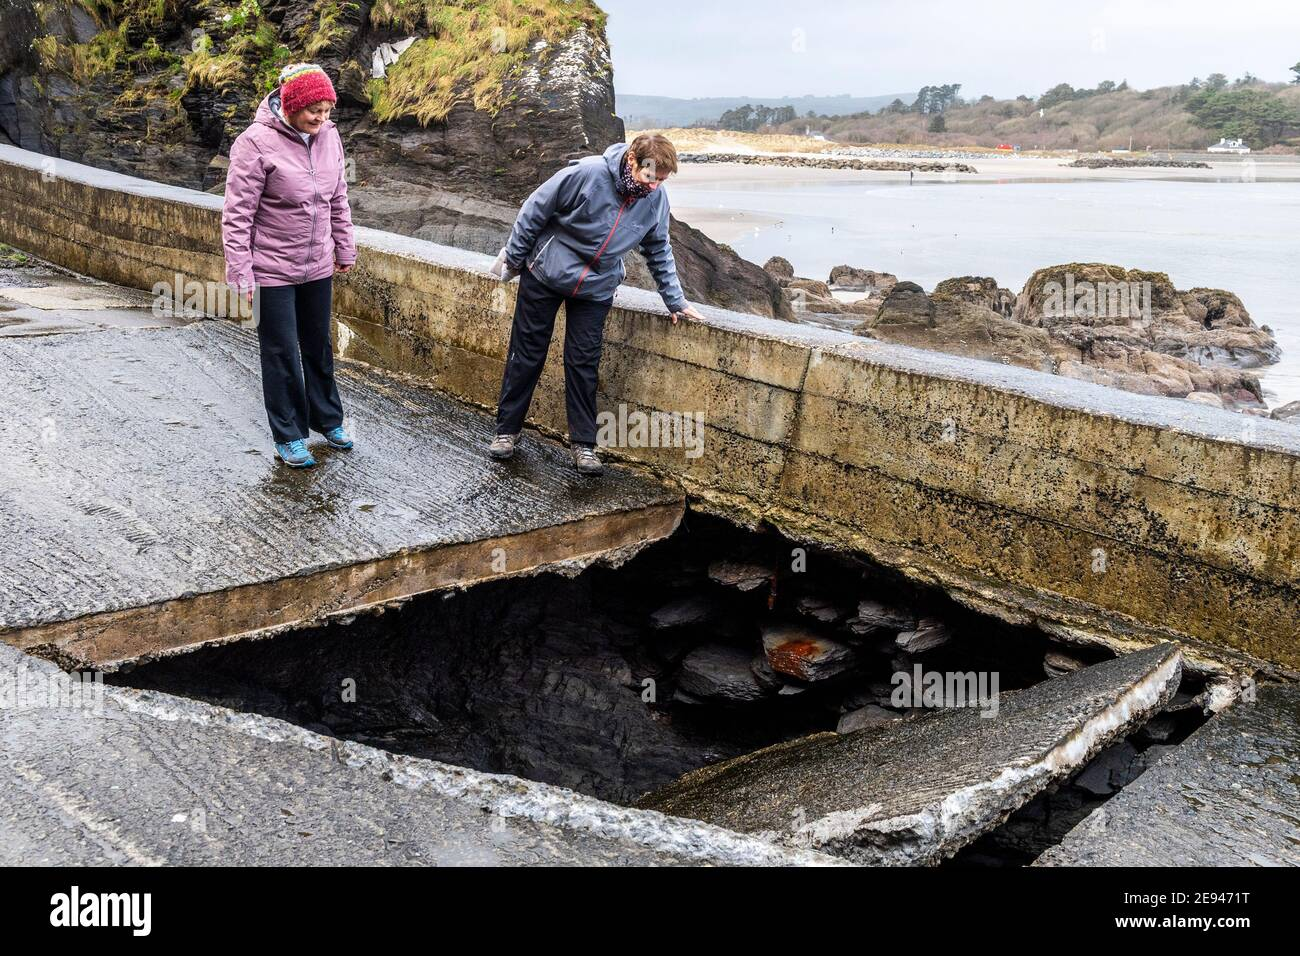 rosscarbery-west-cork-ireland-2nd-feb-2021-part-of-rosscarbery-pier-collapsed-yesterday-it-is-thought-coastal-erosion-is-the-cause-although-the-section-of-pier-was-built-with-no-foundation-credit-ag-newsalamy-live-news-2E9471T.jpg